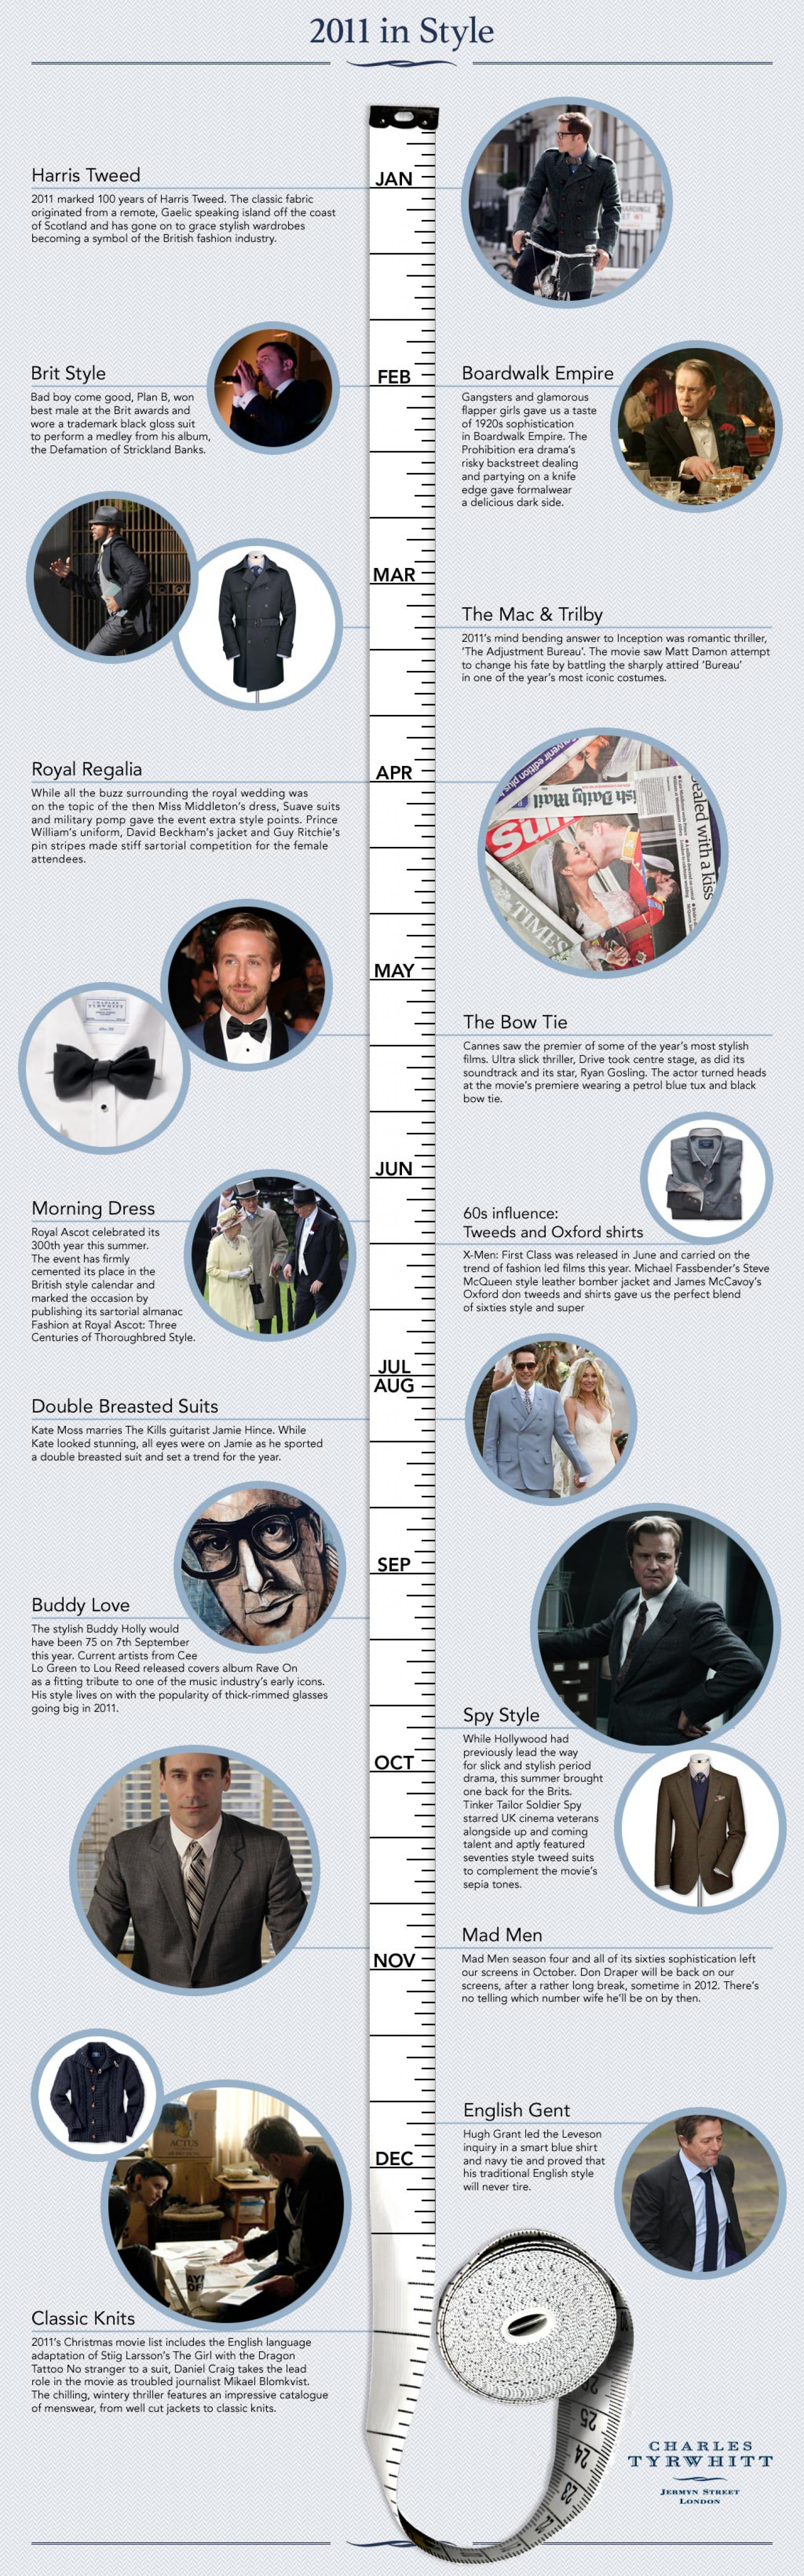 2011 in Style Infographic